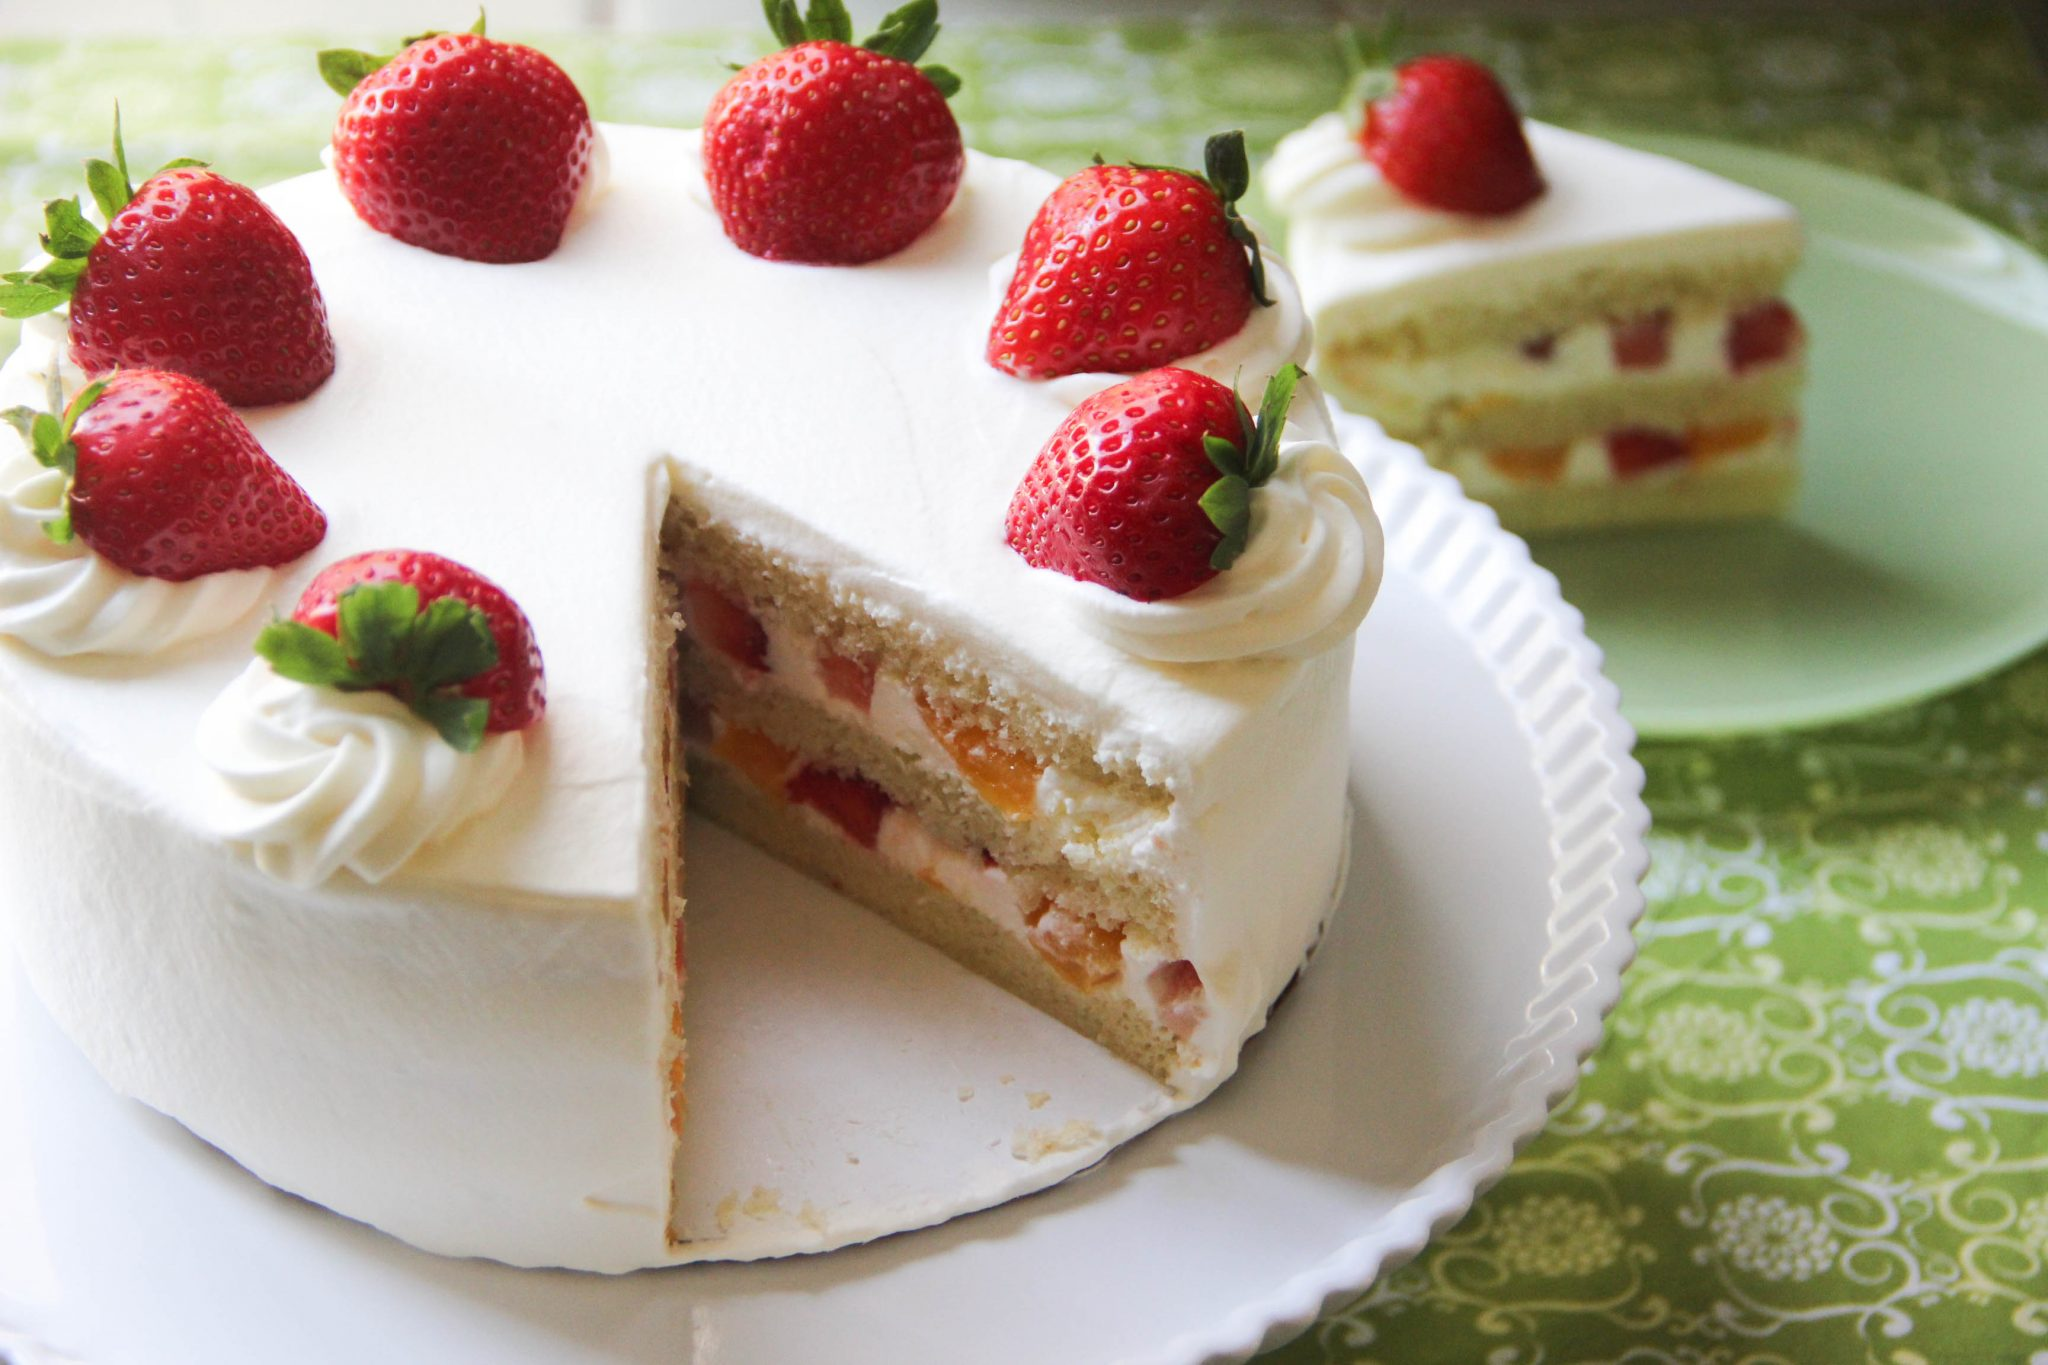 How To Make A Homemade Strawberry Filled Short Cake